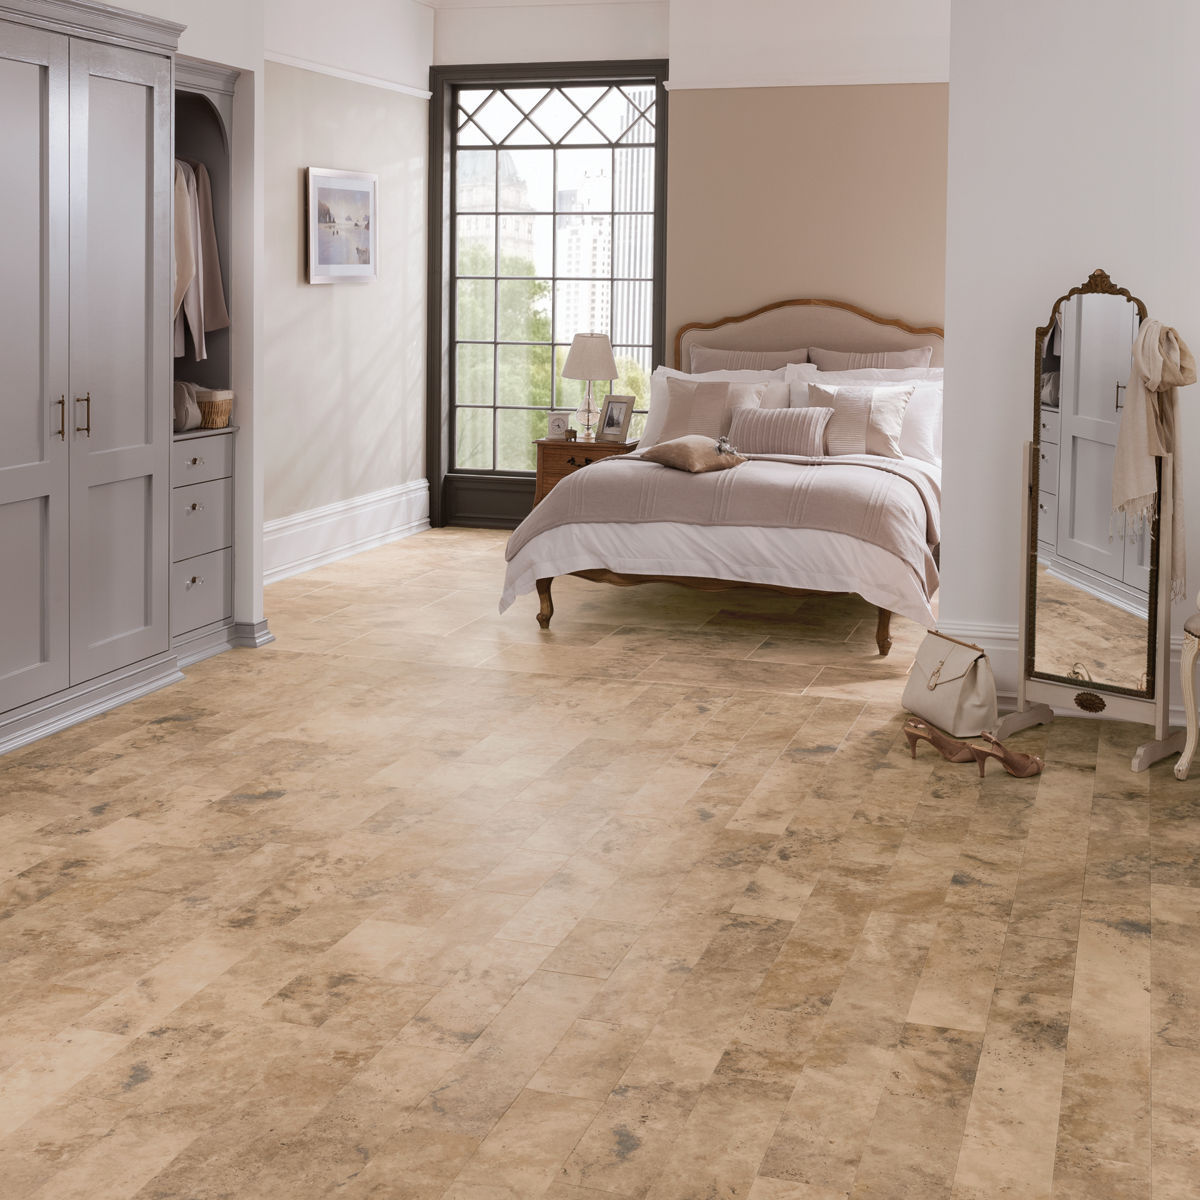 Karndean art select caldera lm18 vinyl flooring for Floor covering ideas for bedrooms